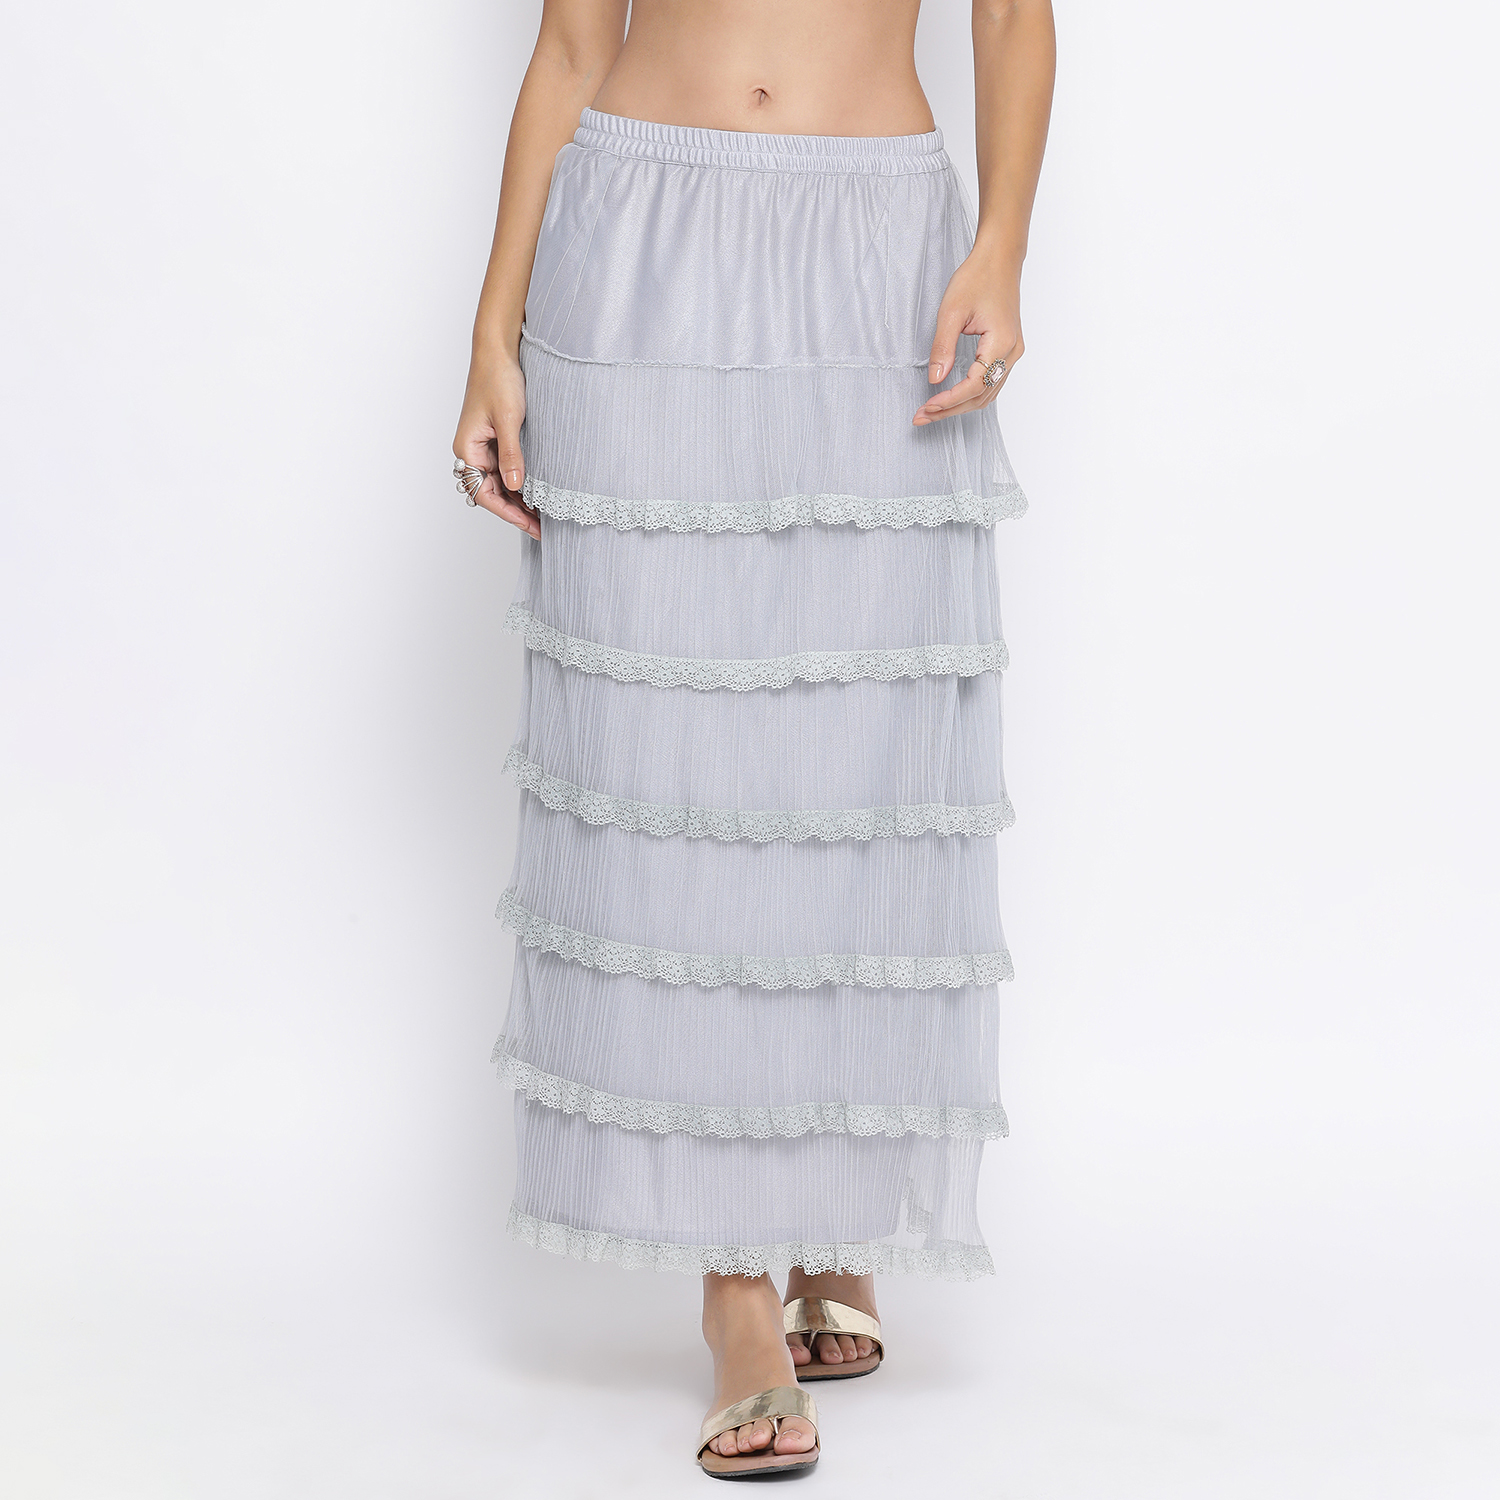 Buy Light Blue Net Frill Skirt With Lace For Women